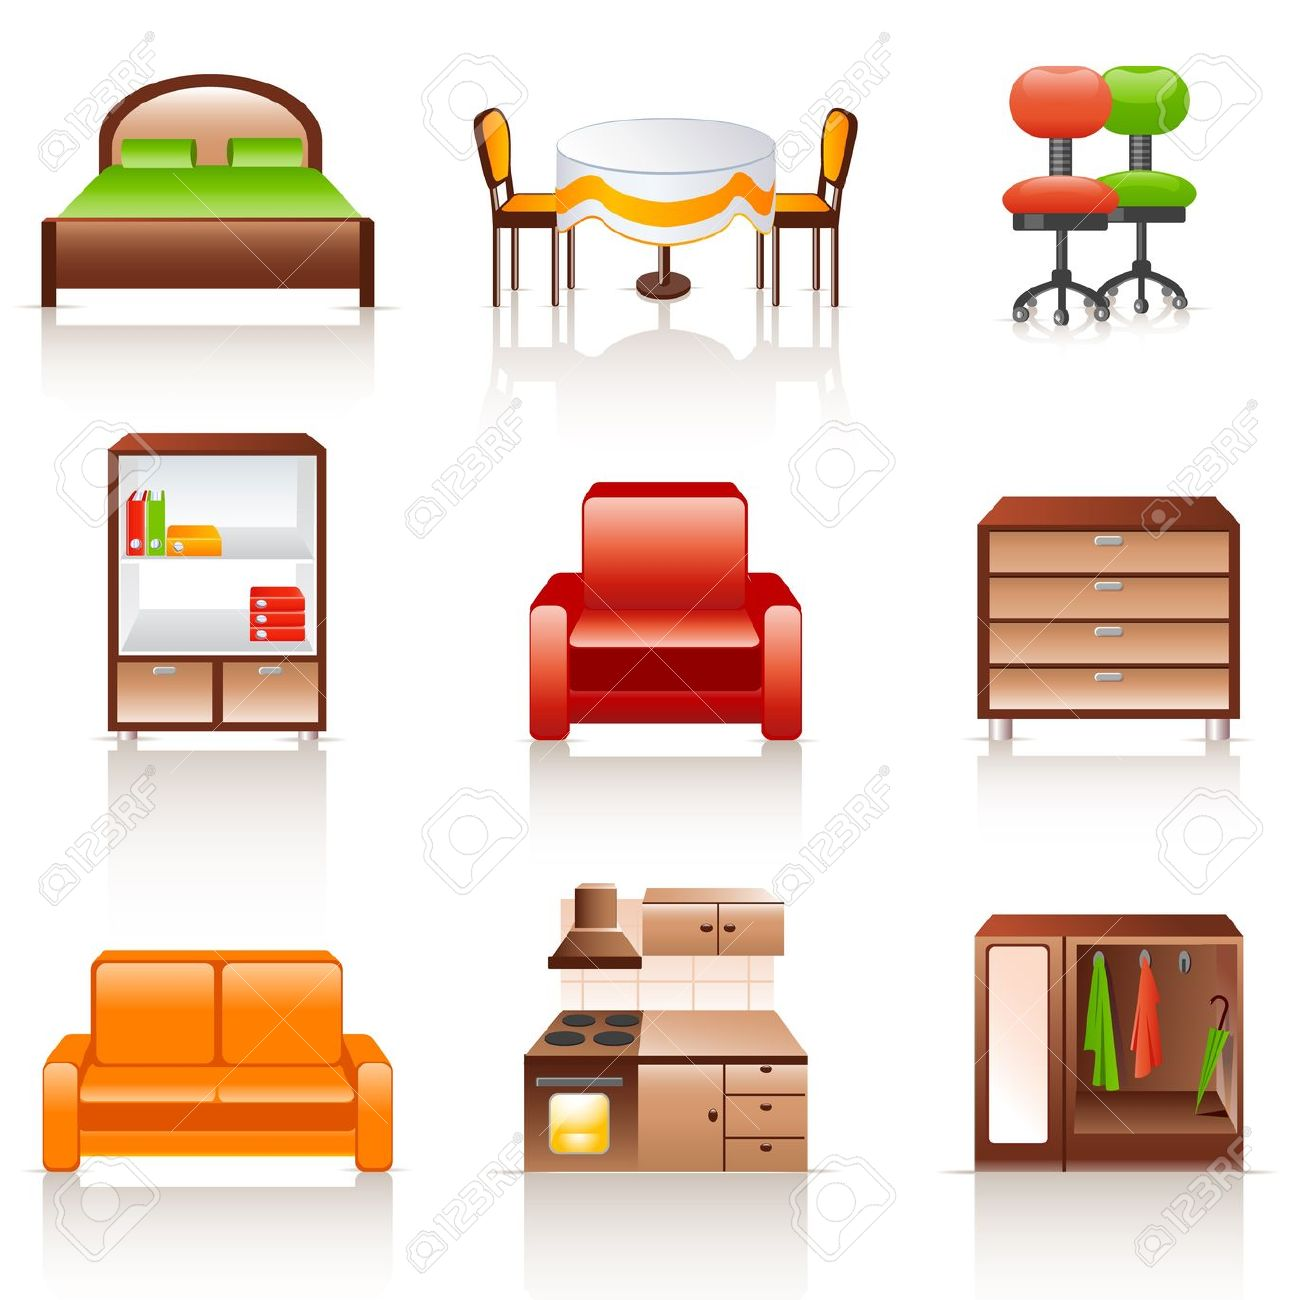 hight resolution of bedroom furniture clipart